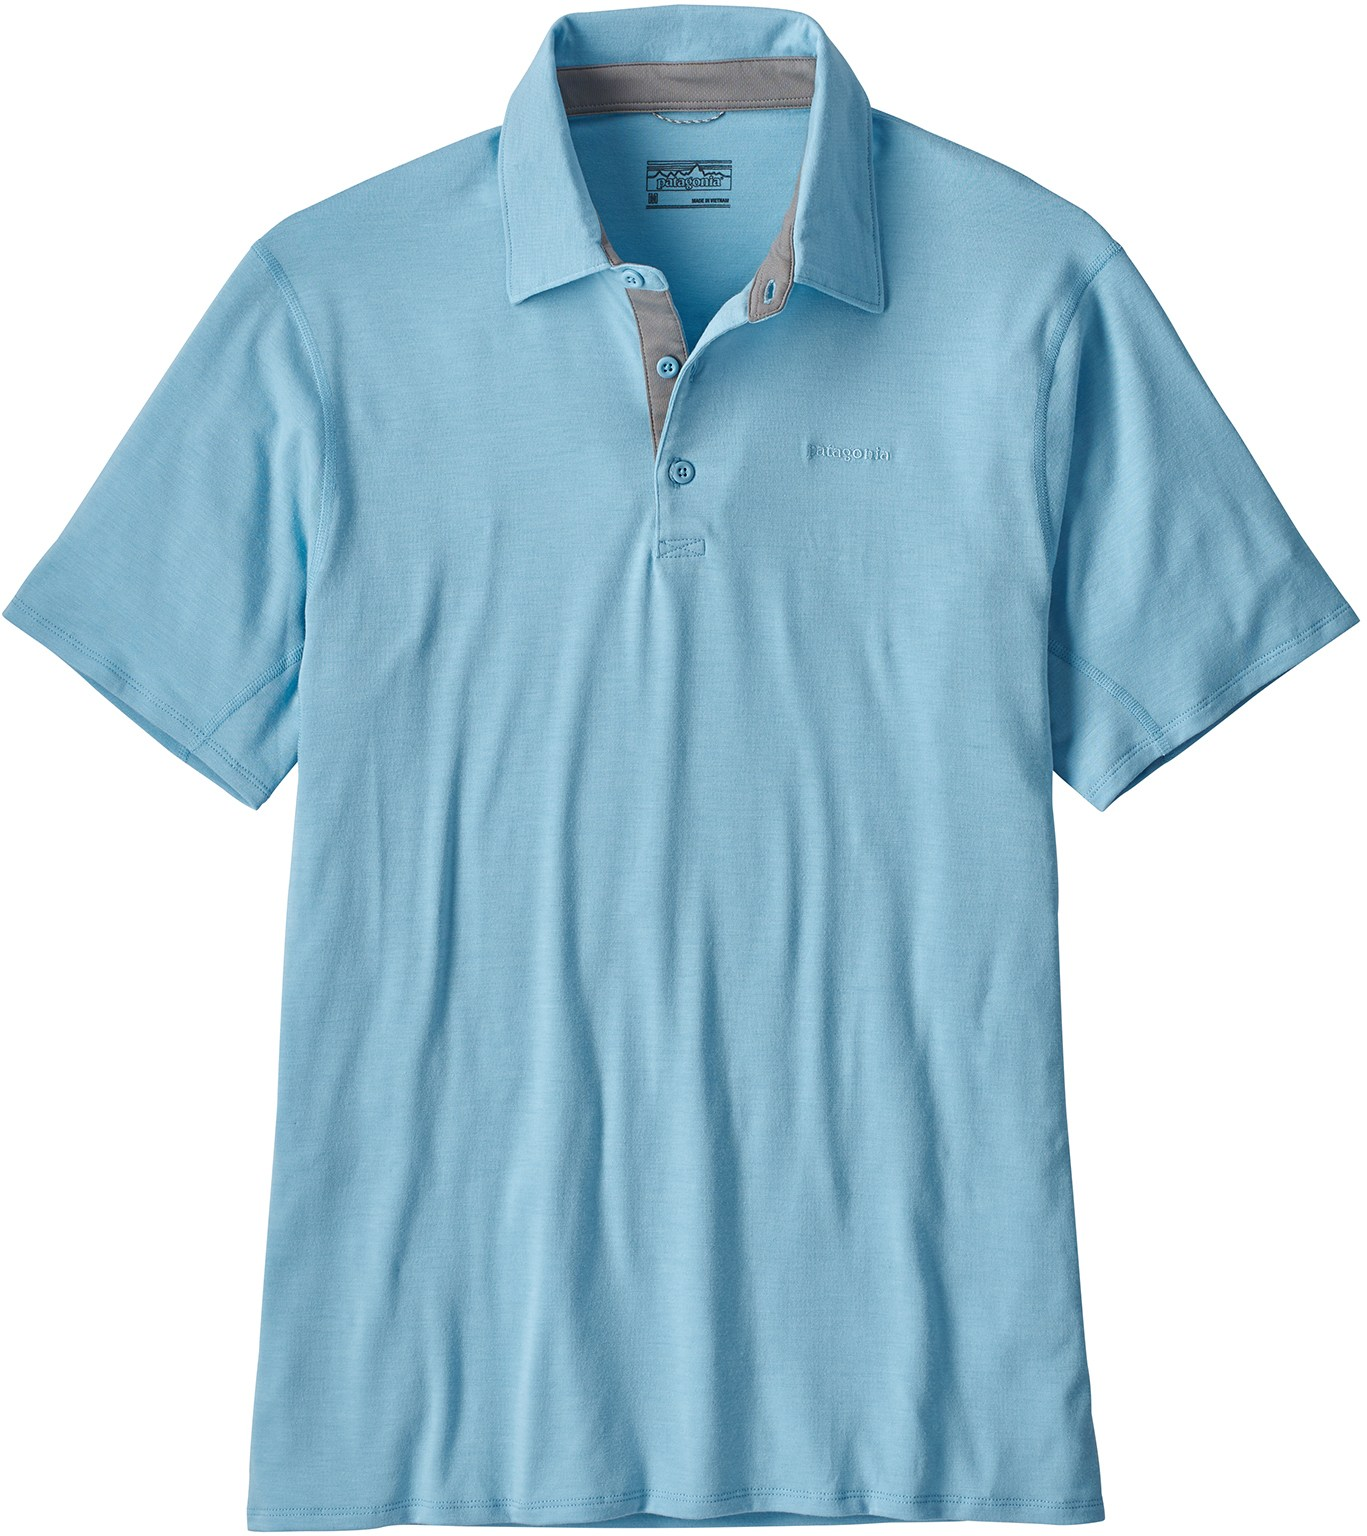 Patagonia Cactusflats Polo - Men's